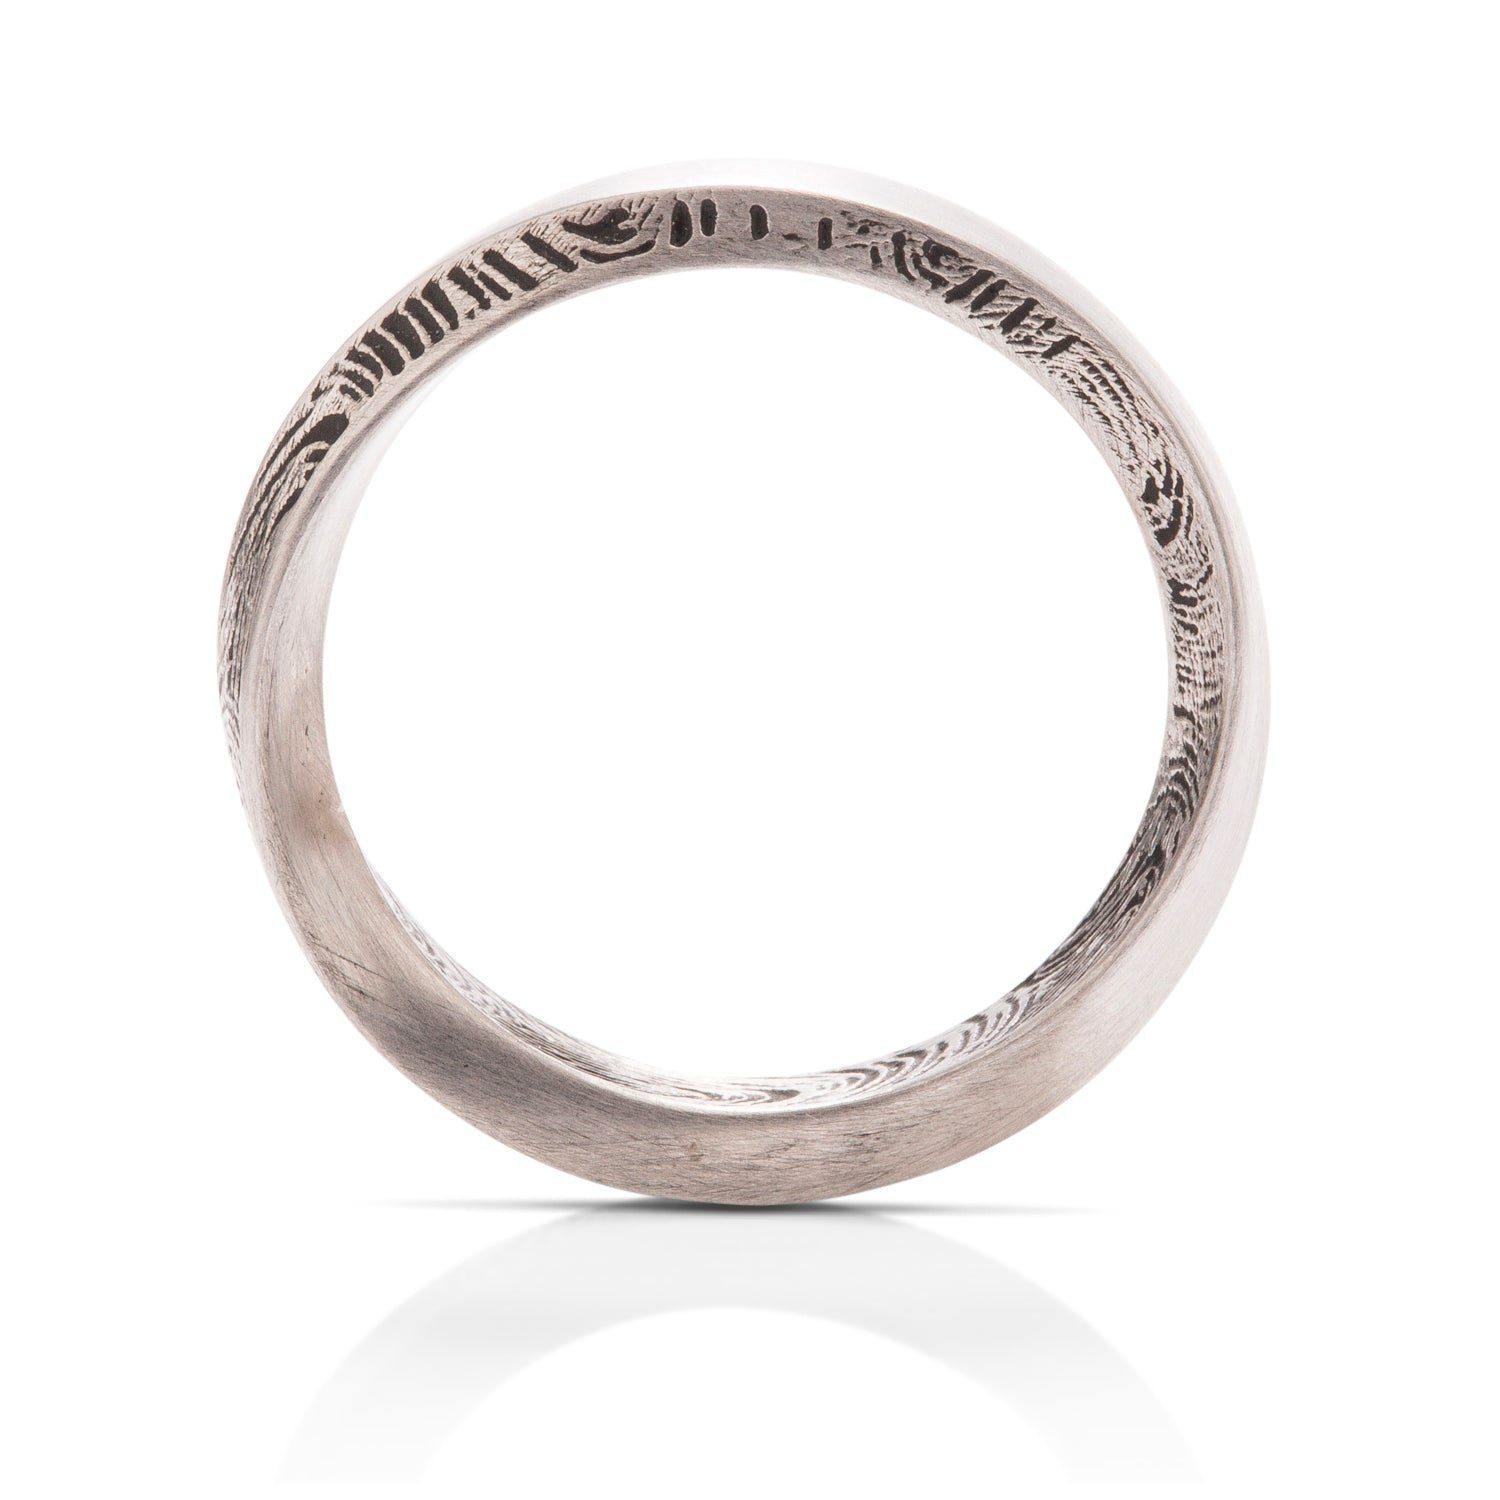 Fingerprint Mobius Ring - Charles Koll Jewellers